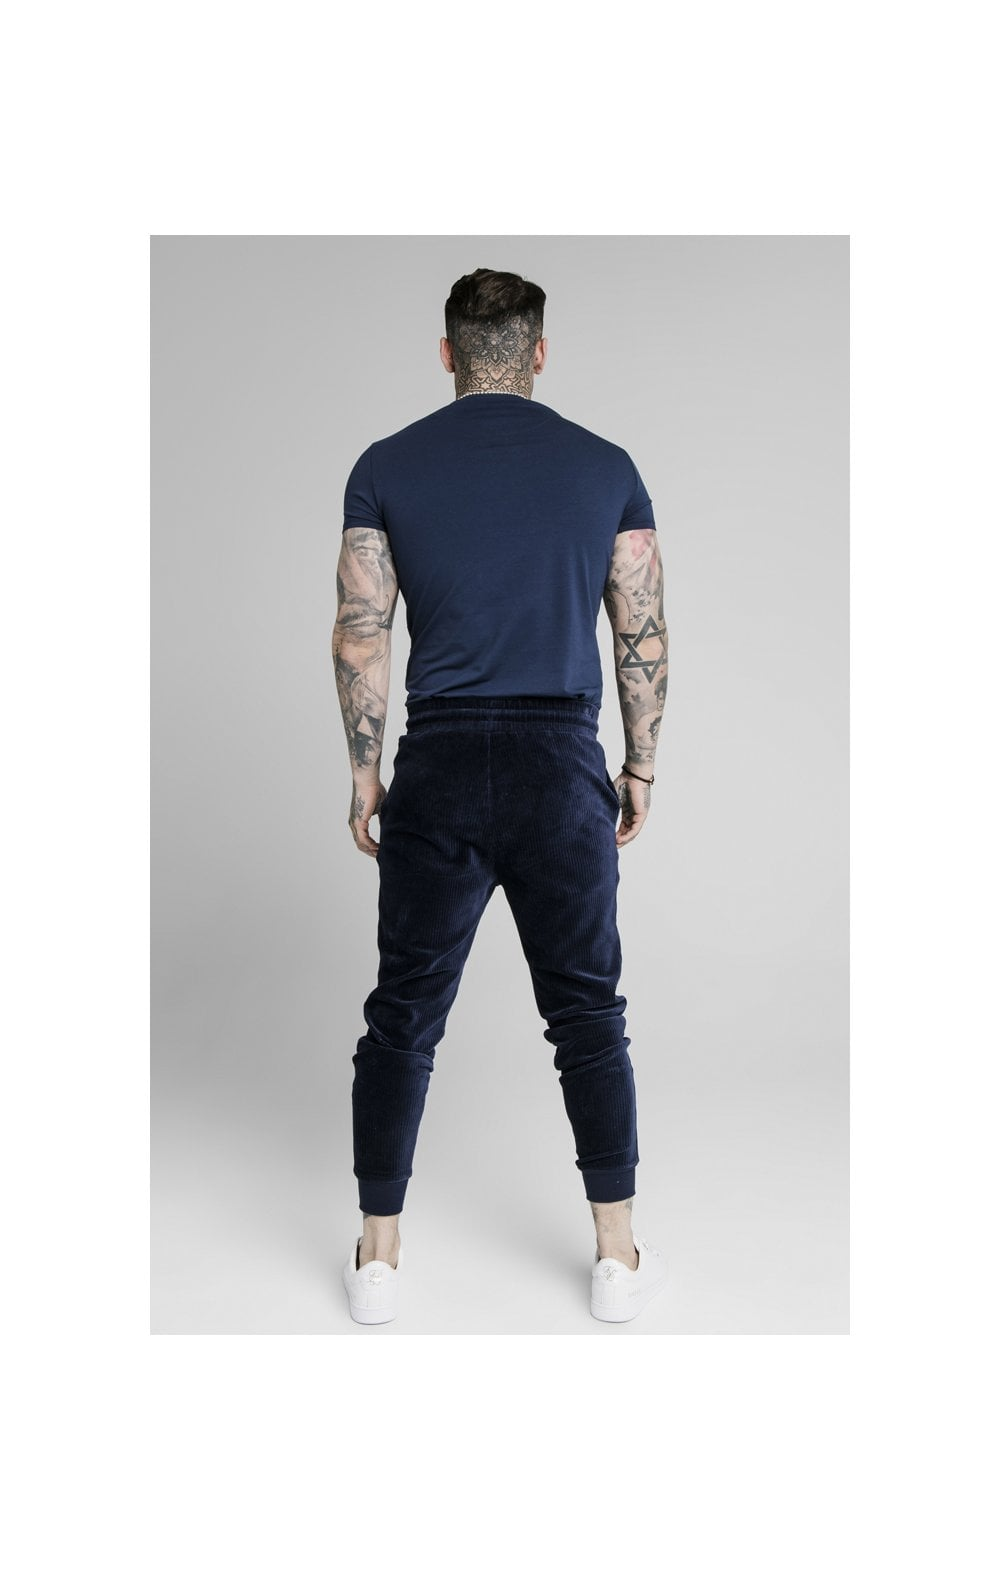 Load image into Gallery viewer, SikSilk Allure Straight Hem Gym Tee - Navy (5)